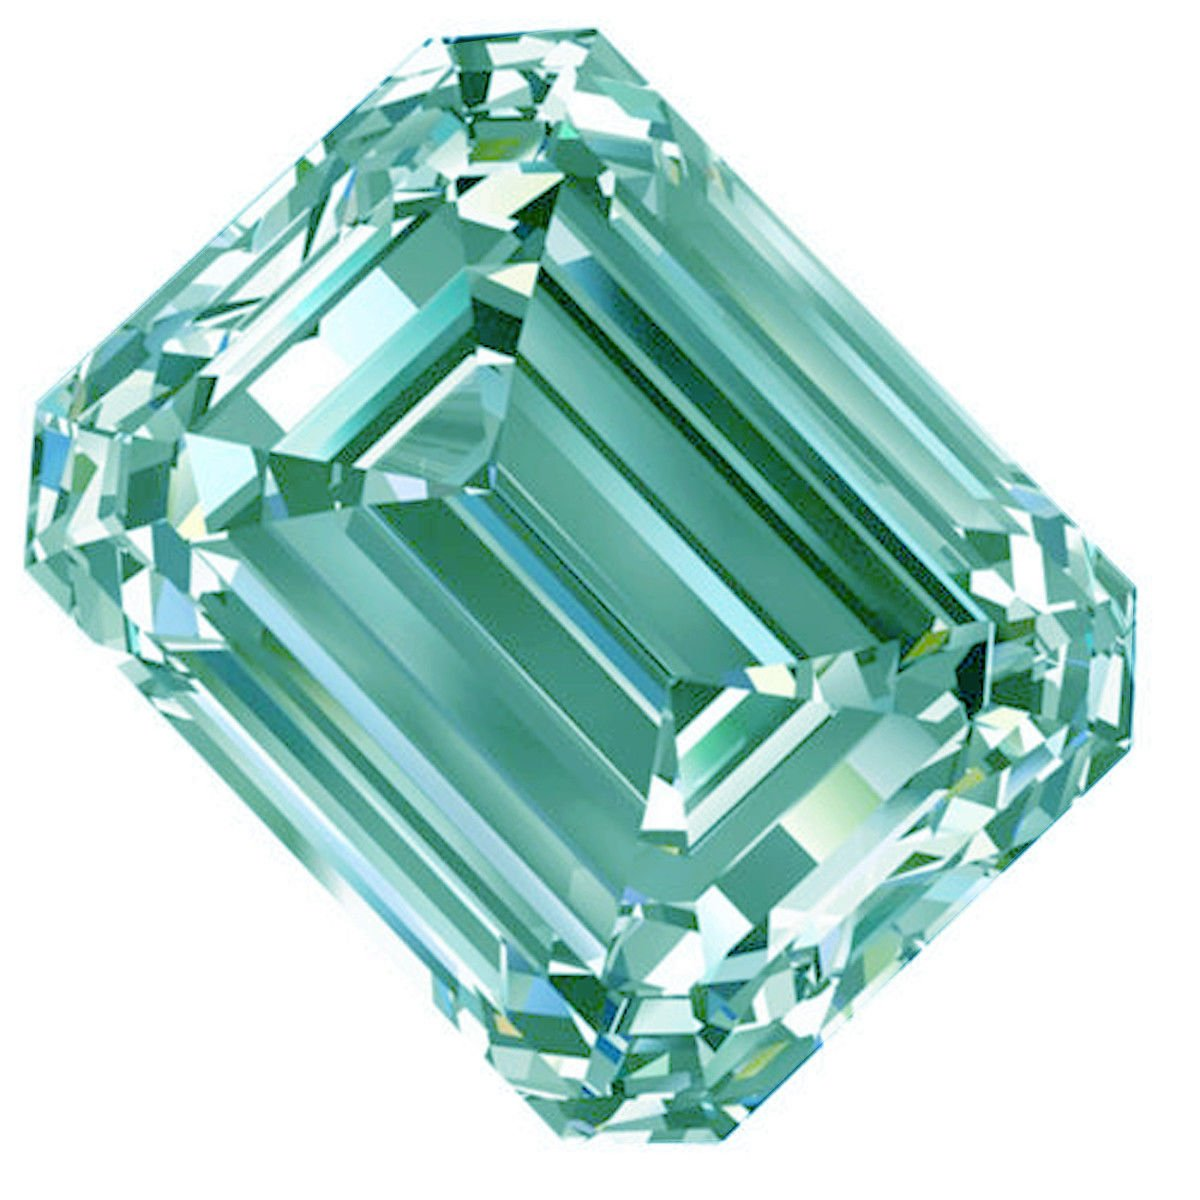 RINGJEWEL 5.60 ct VVS1 Off White Ice Blue Color Emerald-Cut Loose Moissanite Stone Use 4 Ring/pendant